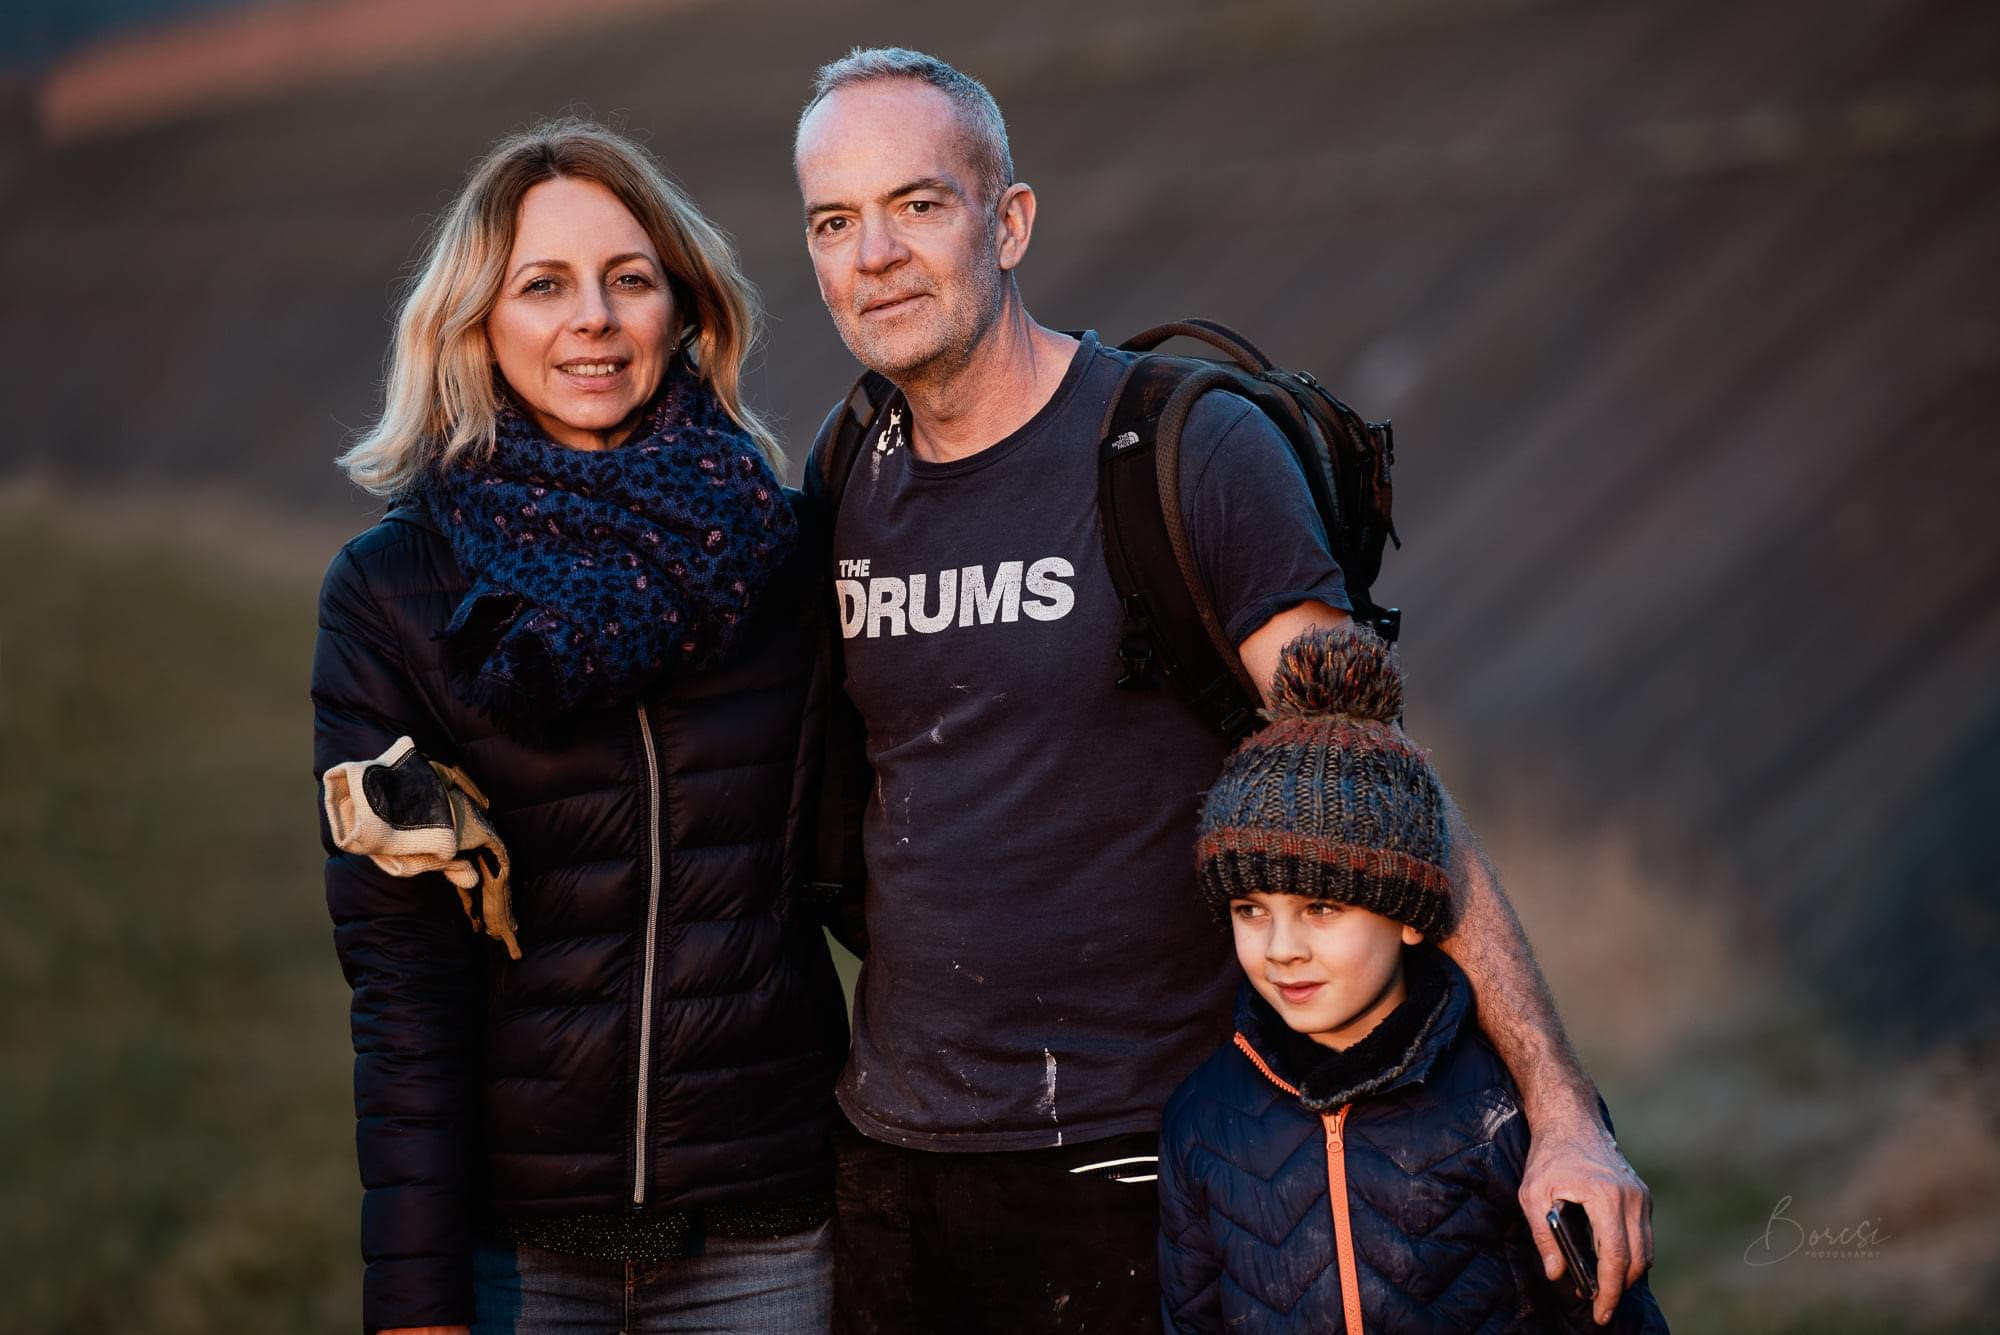 British Firefighter and Family Moves to Hungary, Dedicate Free Time to Clean River Tisza